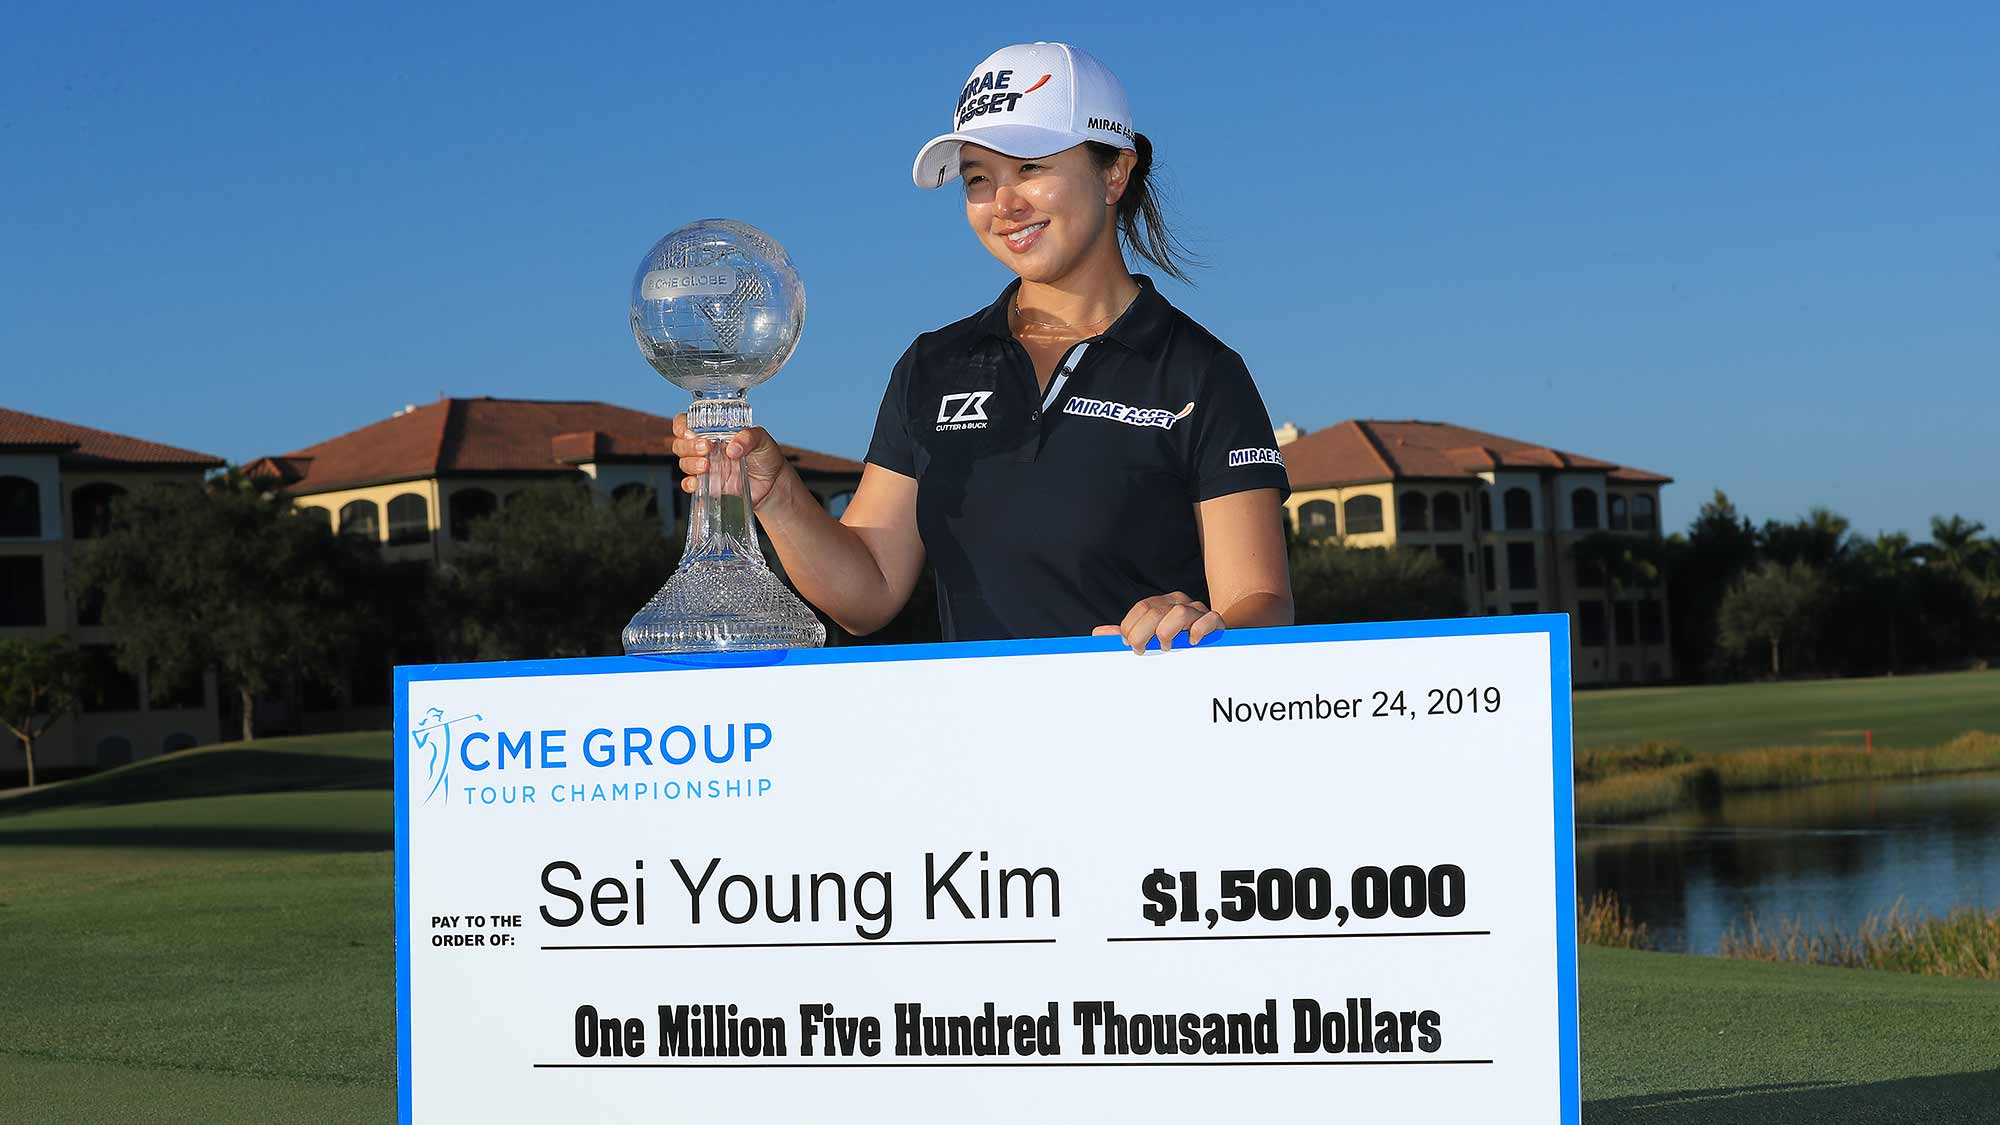 Sei Young Kim of South Korea poses with the CME Globe trophy and winner's check after winning the CME Group Tour Championship at Tiburon Golf Club on November 24, 2019 in Naples, Florida.